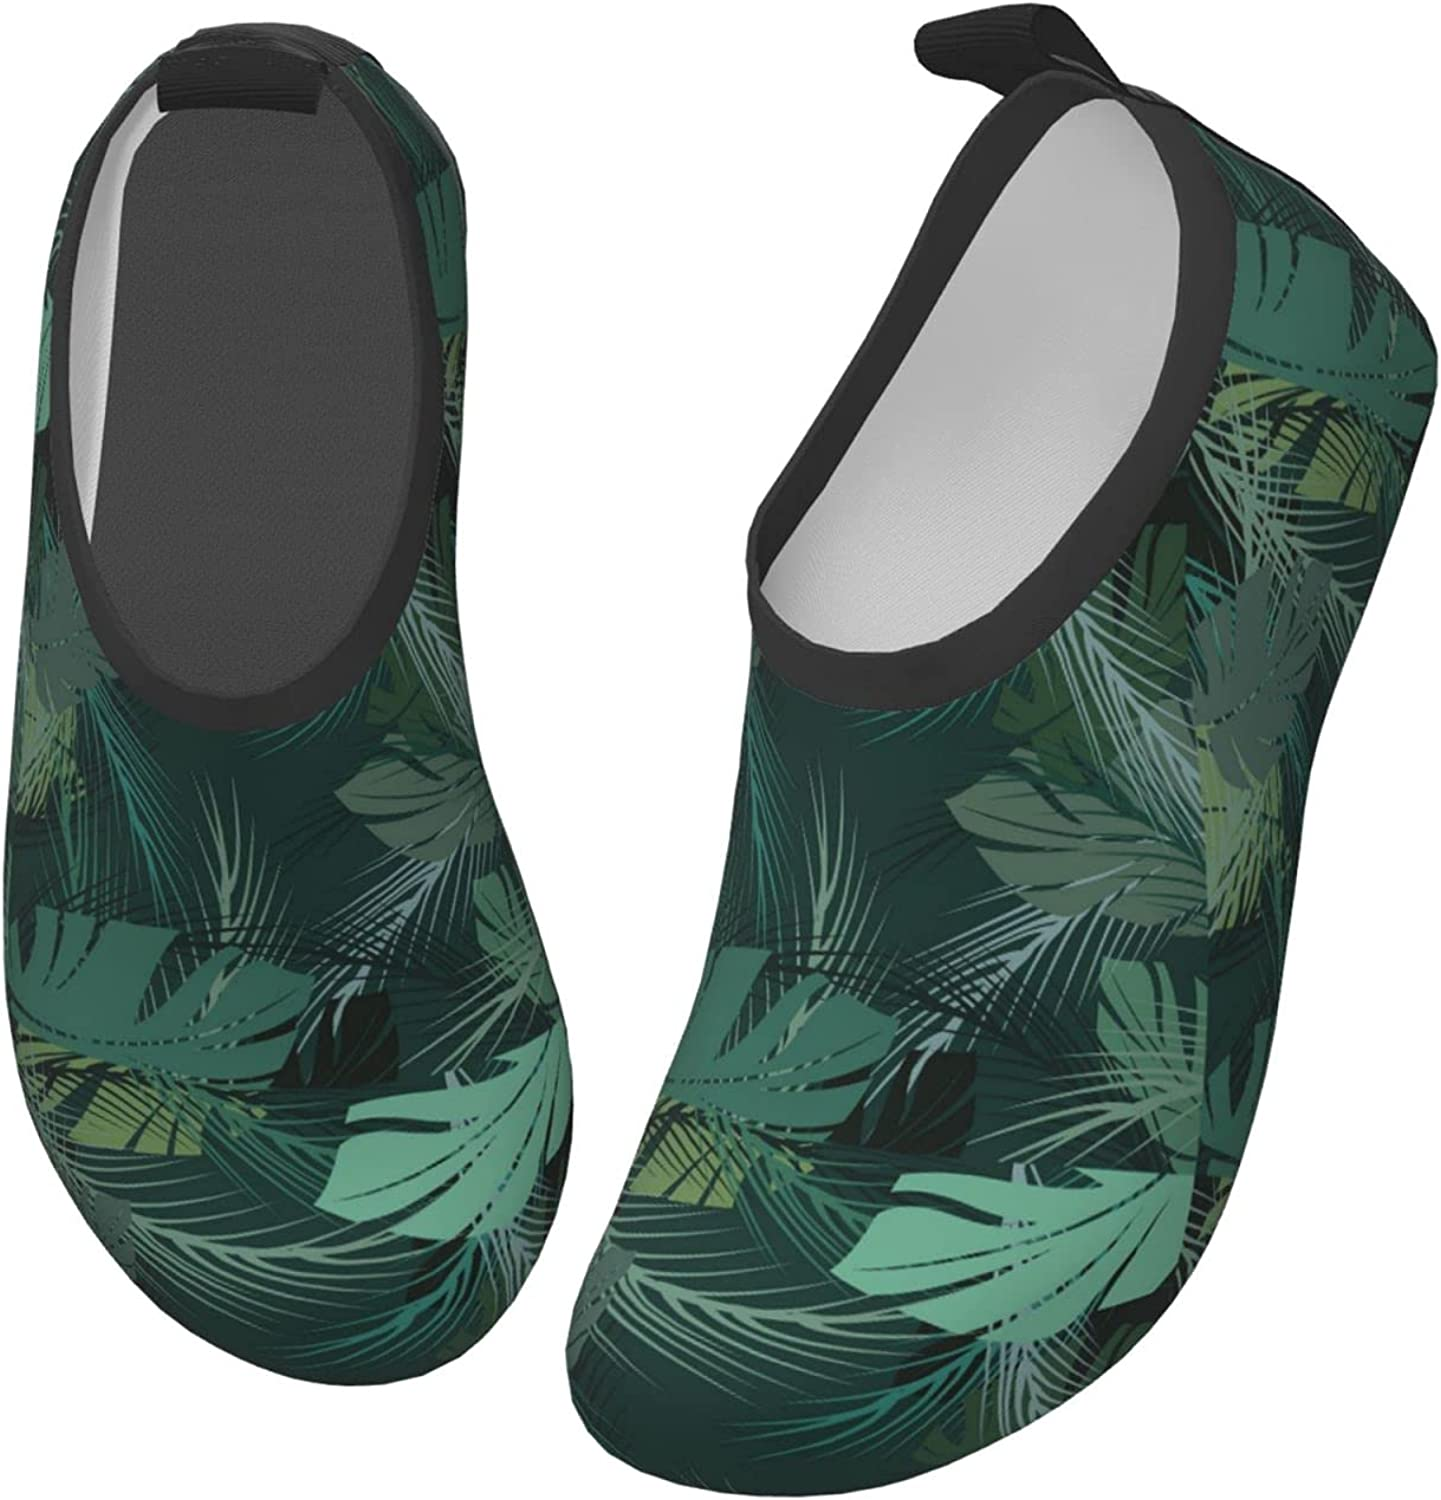 Jedenkuku Leaves Style Coconut Hawaii Children's Water Shoes Feel Barefoot for Swimming Beach Boating Surfing Yoga